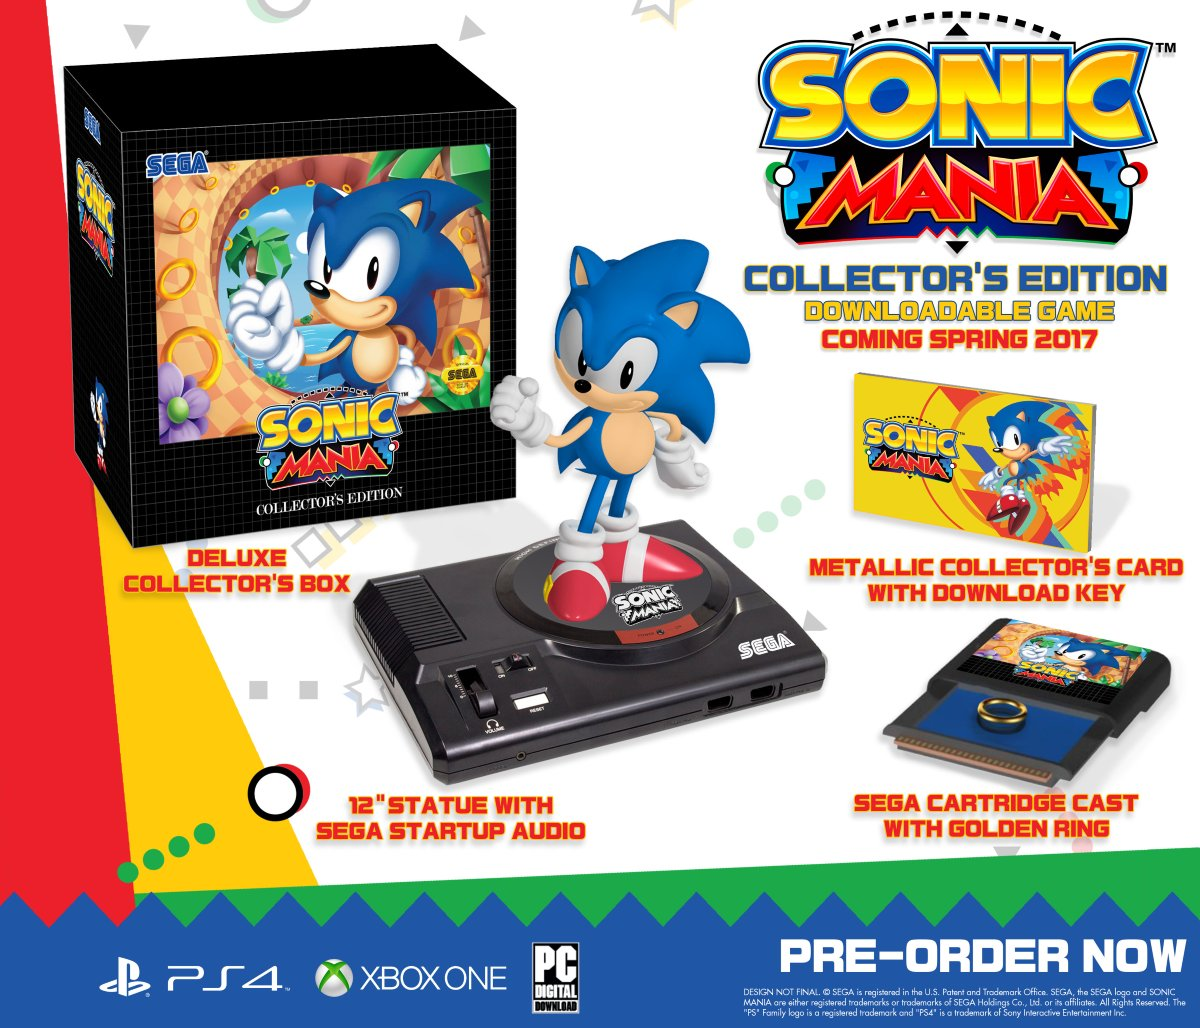 The newly announced Sonic Mania collector's edition keeps